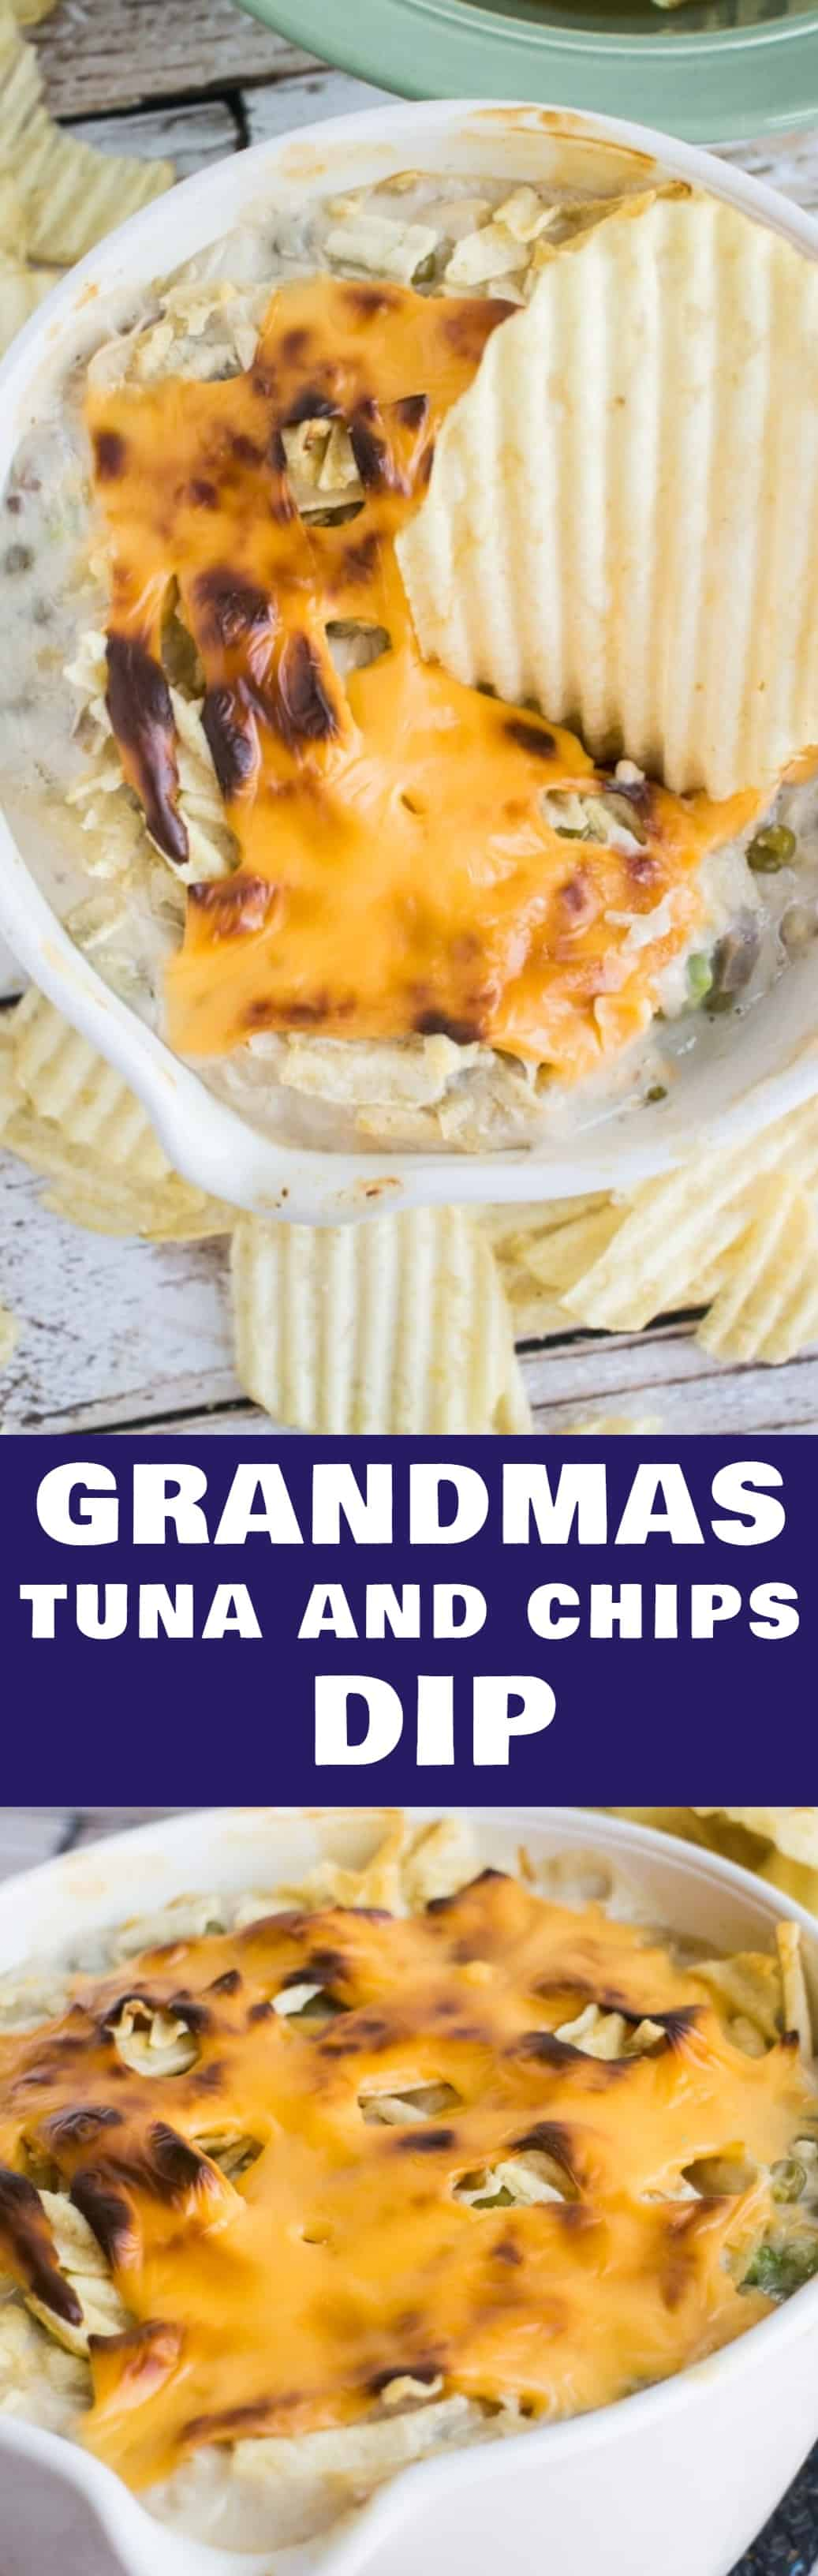 Grandmas Tuna and Chips Dip recipe, just like Grandma used to make it! This creamy tuna dip is made with Cream of Mushroom Soup and American cheese slices with crushed up potato chips on top! This is a classic Midwestern family recipe!